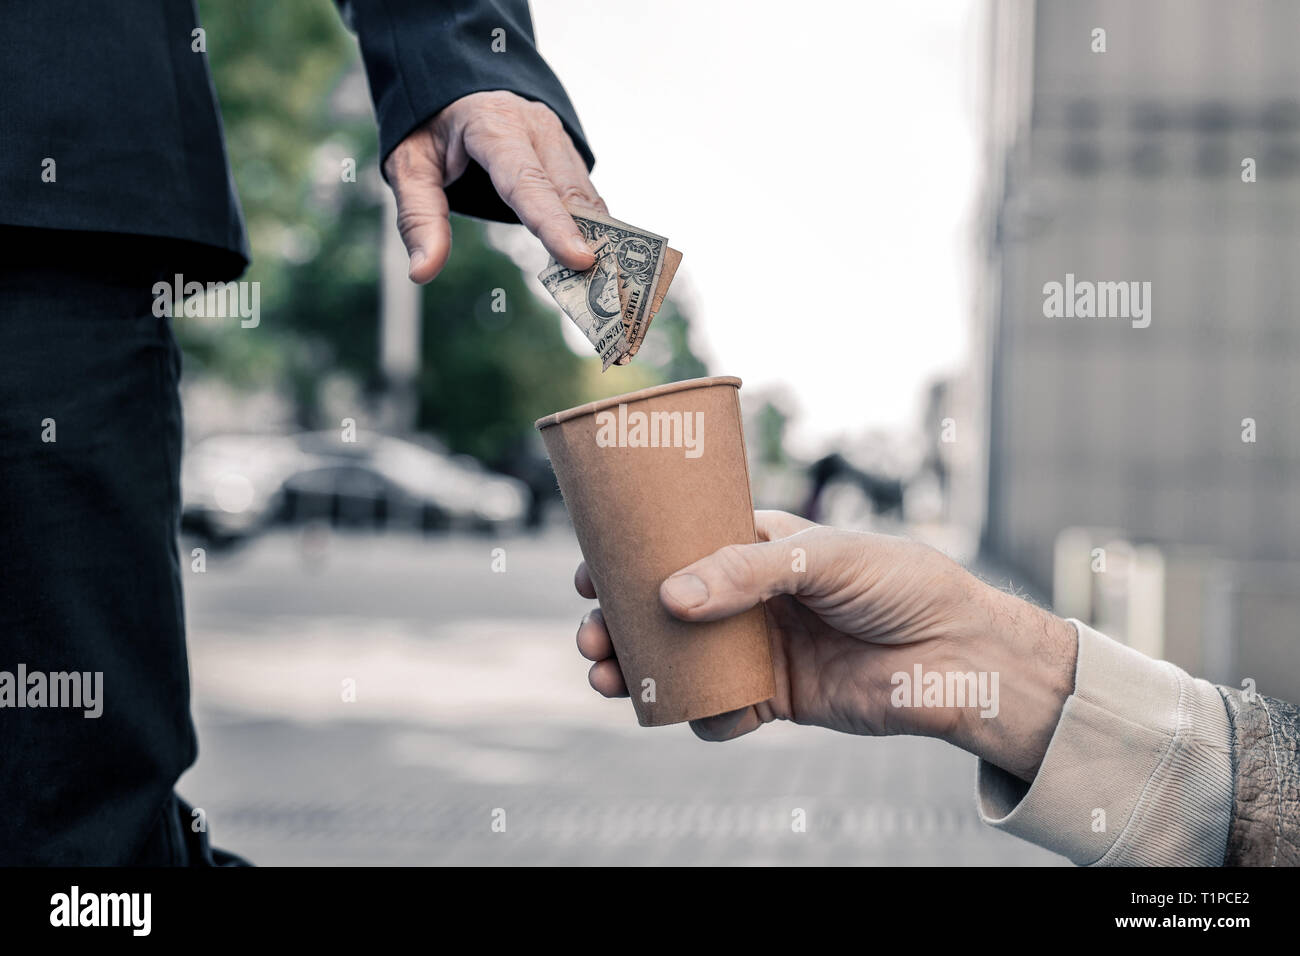 Rich business man stopping on street and compassionately sharing money - Stock Image